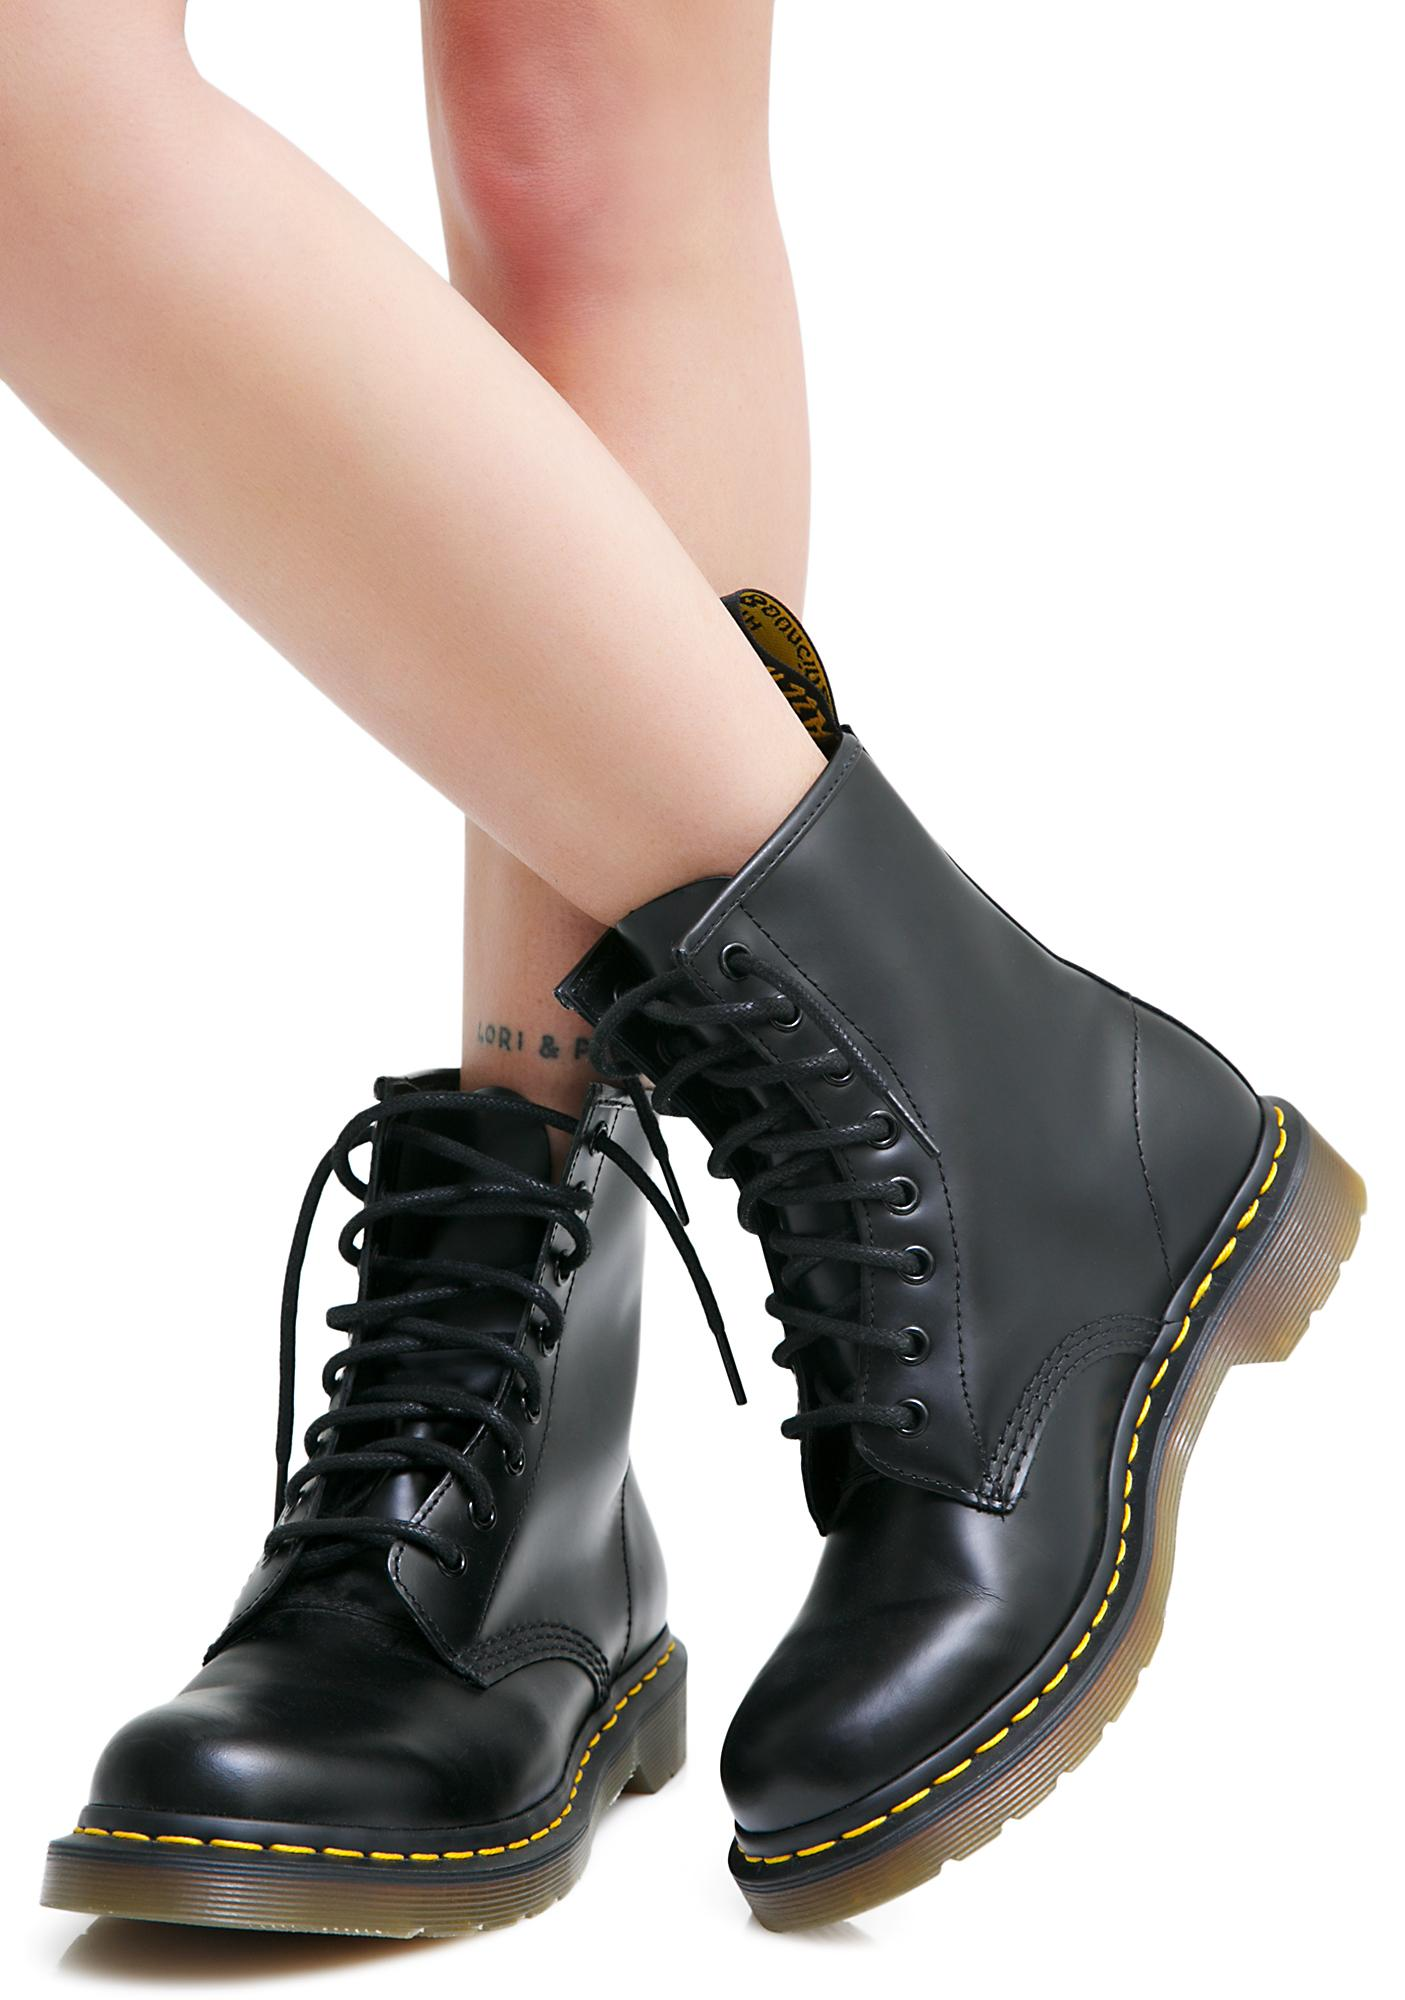 Dr. Martens 1460 8 Eye Boot in 2020 | Doc martens boots